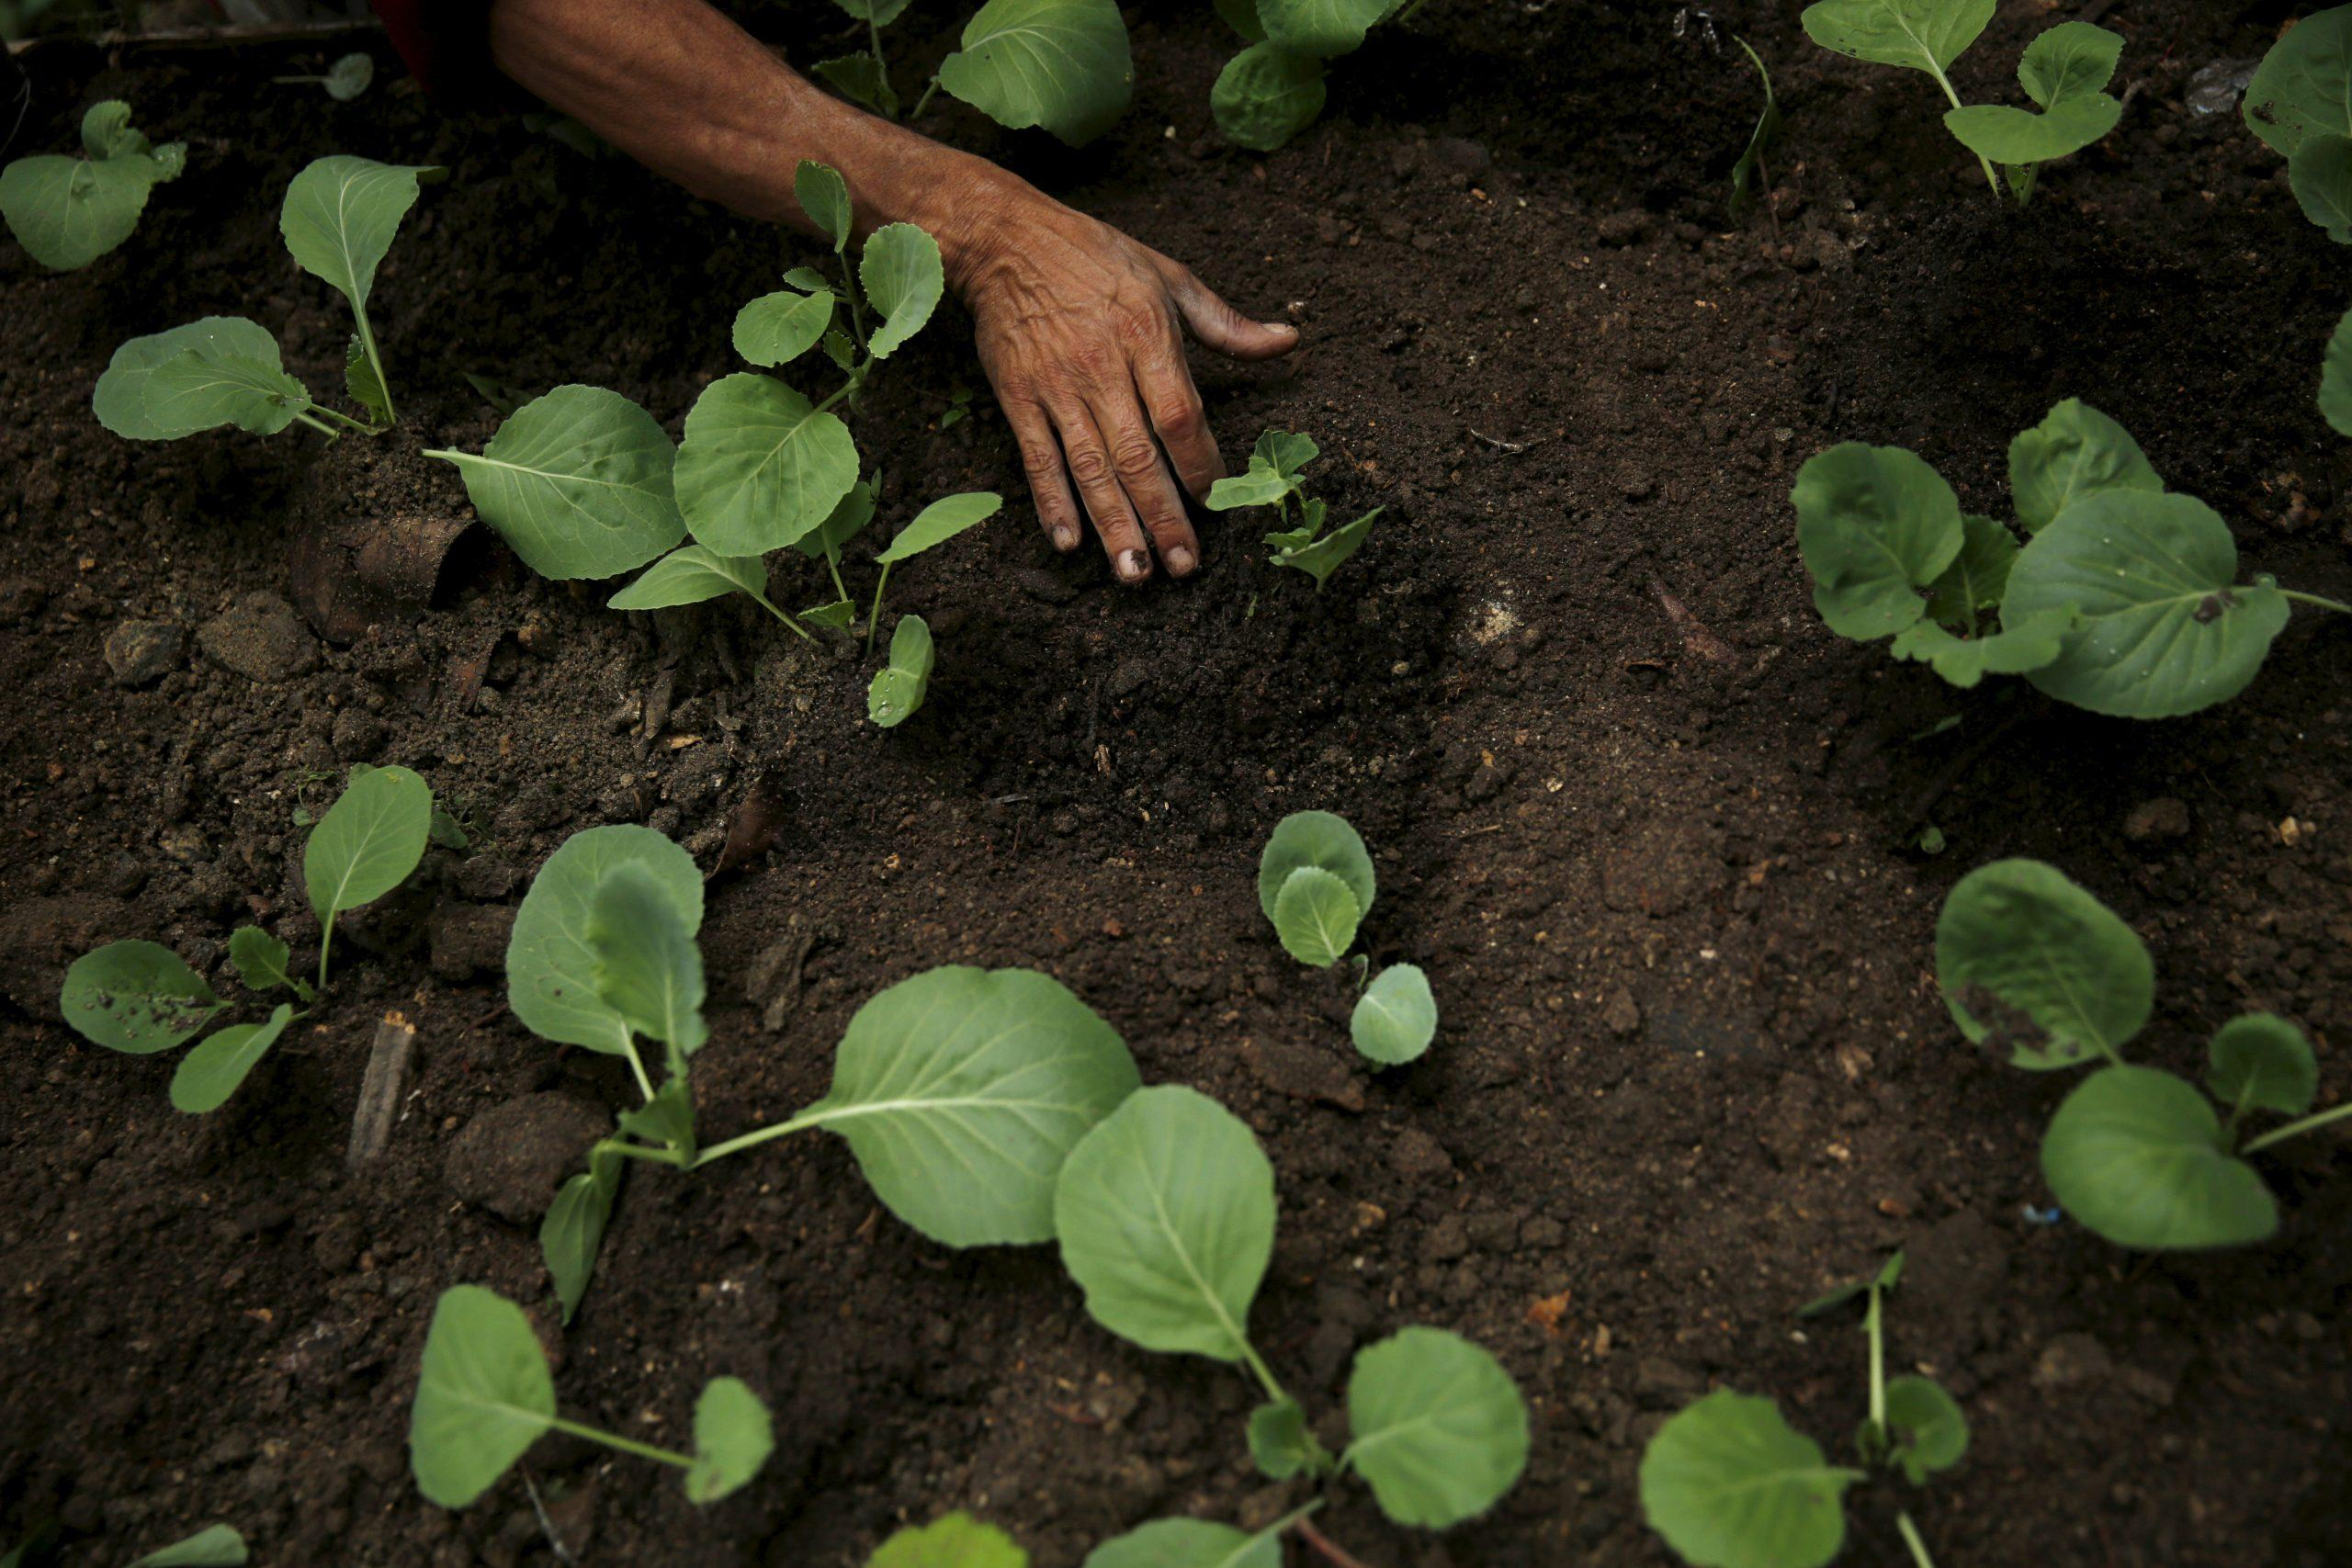 Latin America urged to boost green jobs for pandemic recovery - GLOBAL HEROES MAGAZINE